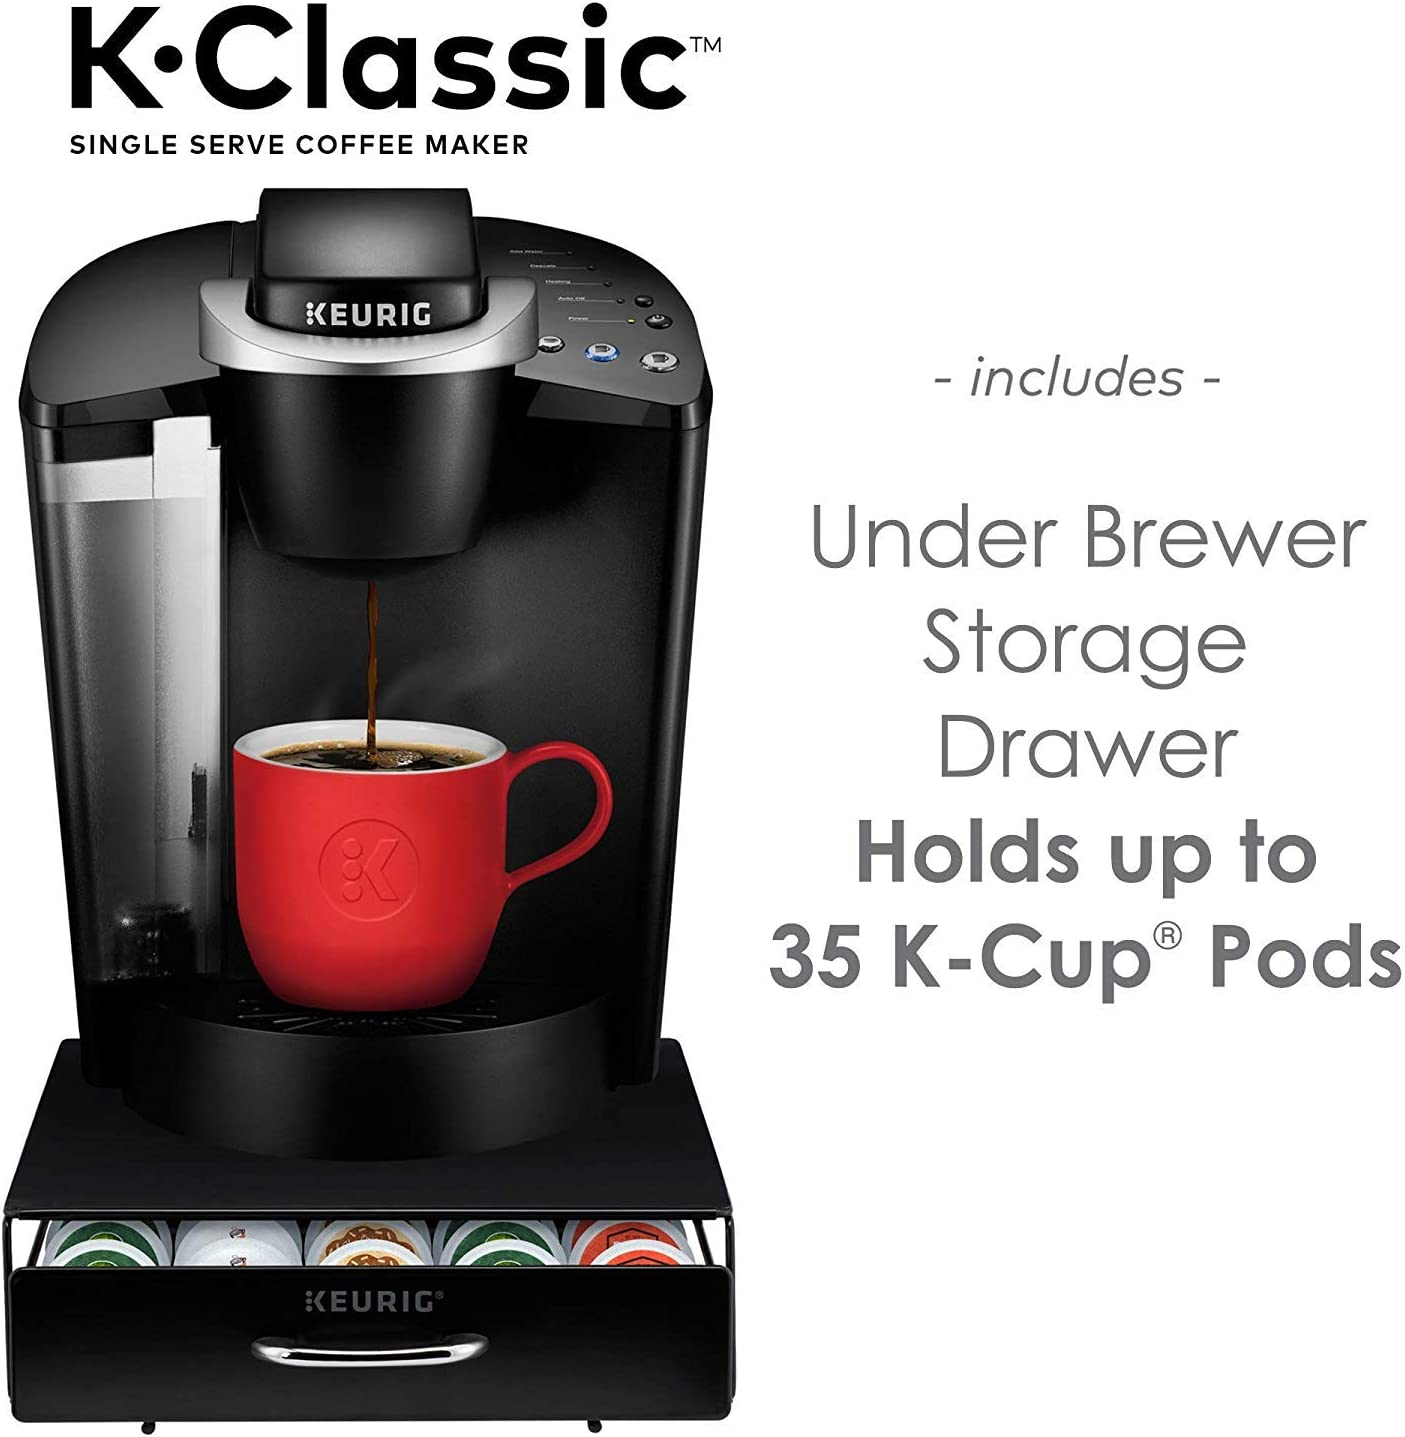 Keurig K-Classic Coffee Maker, Single Serve K-Cup Pod Coffee Brewer, Black and Under Brewer Storage Drawer, Holds up to 36 Keurig K-Cup Pods, Black